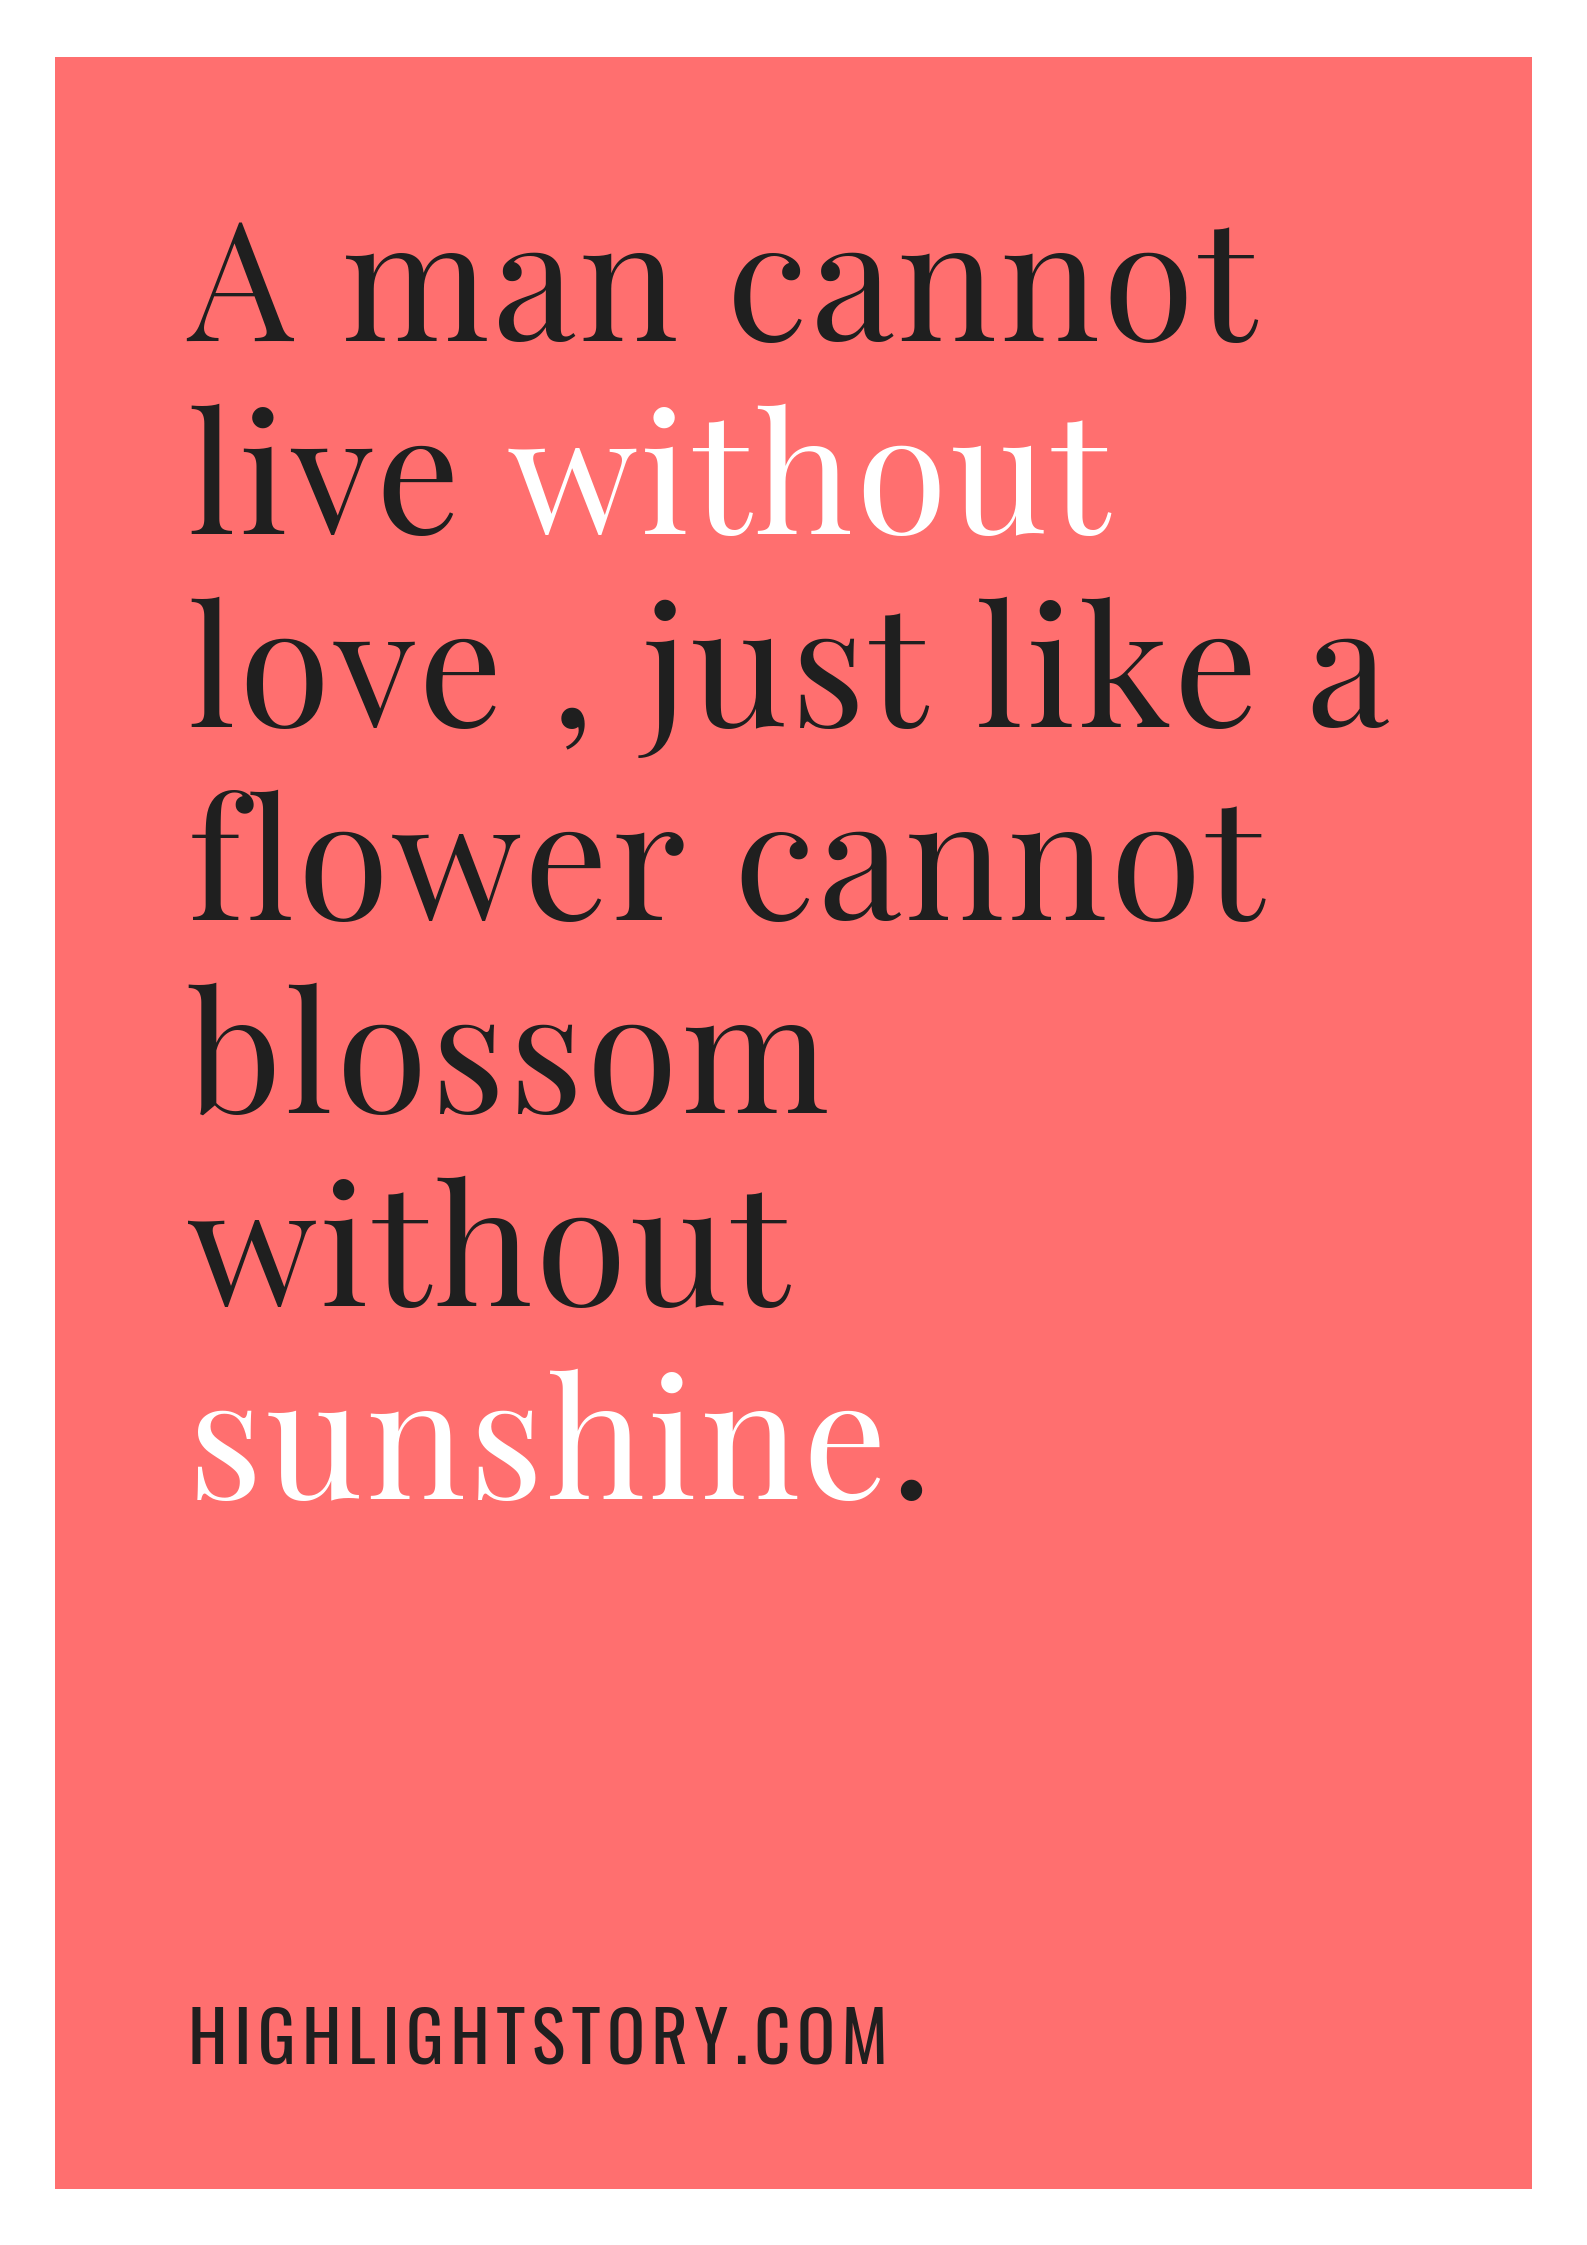 A man cannot live without love , just like a flower cannot blossom without sunshine.